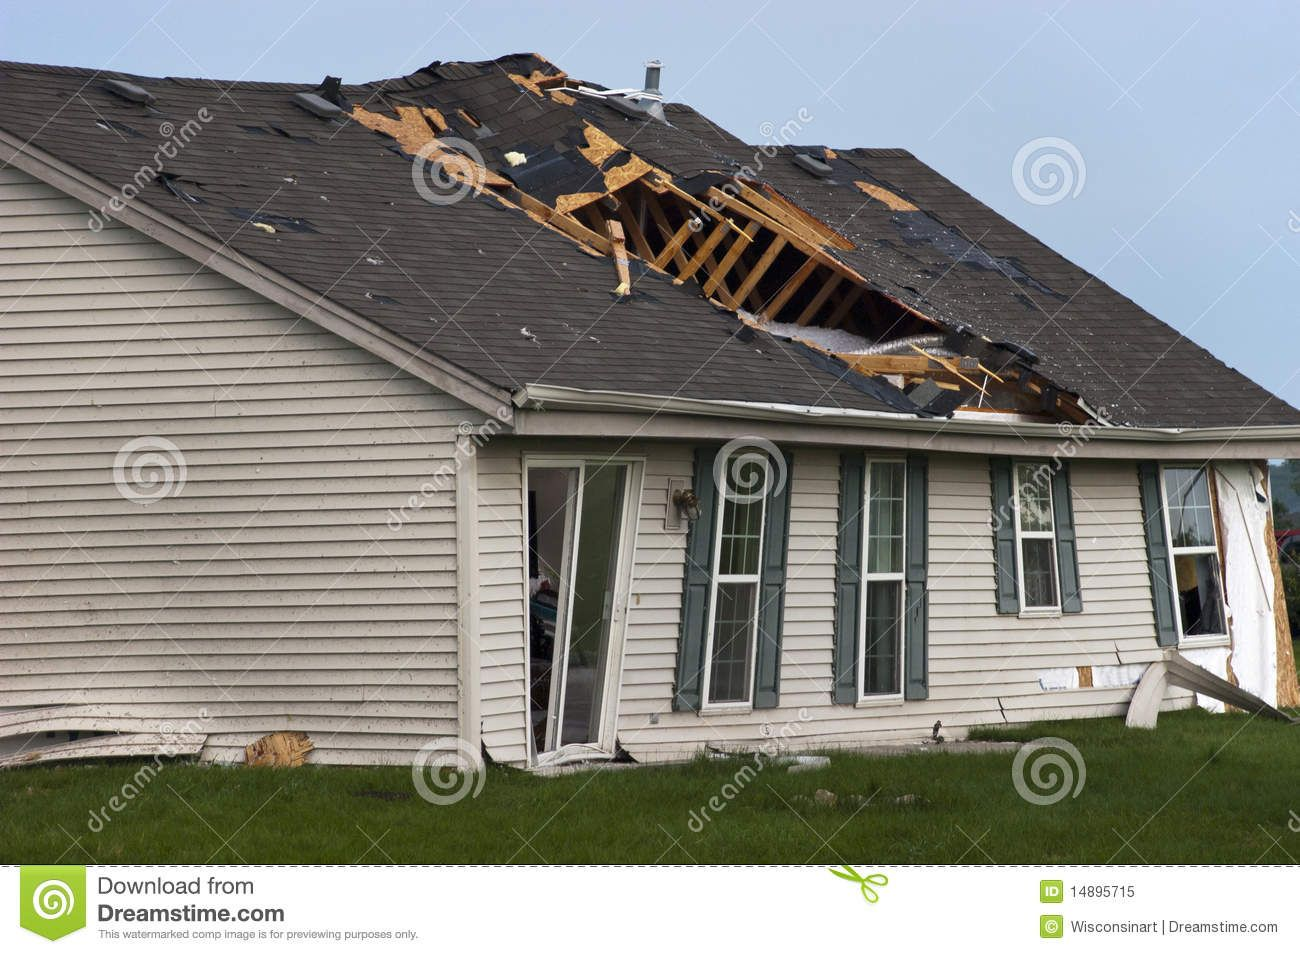 South Florida Wind Damage Insurance Claim Assistance Roofing